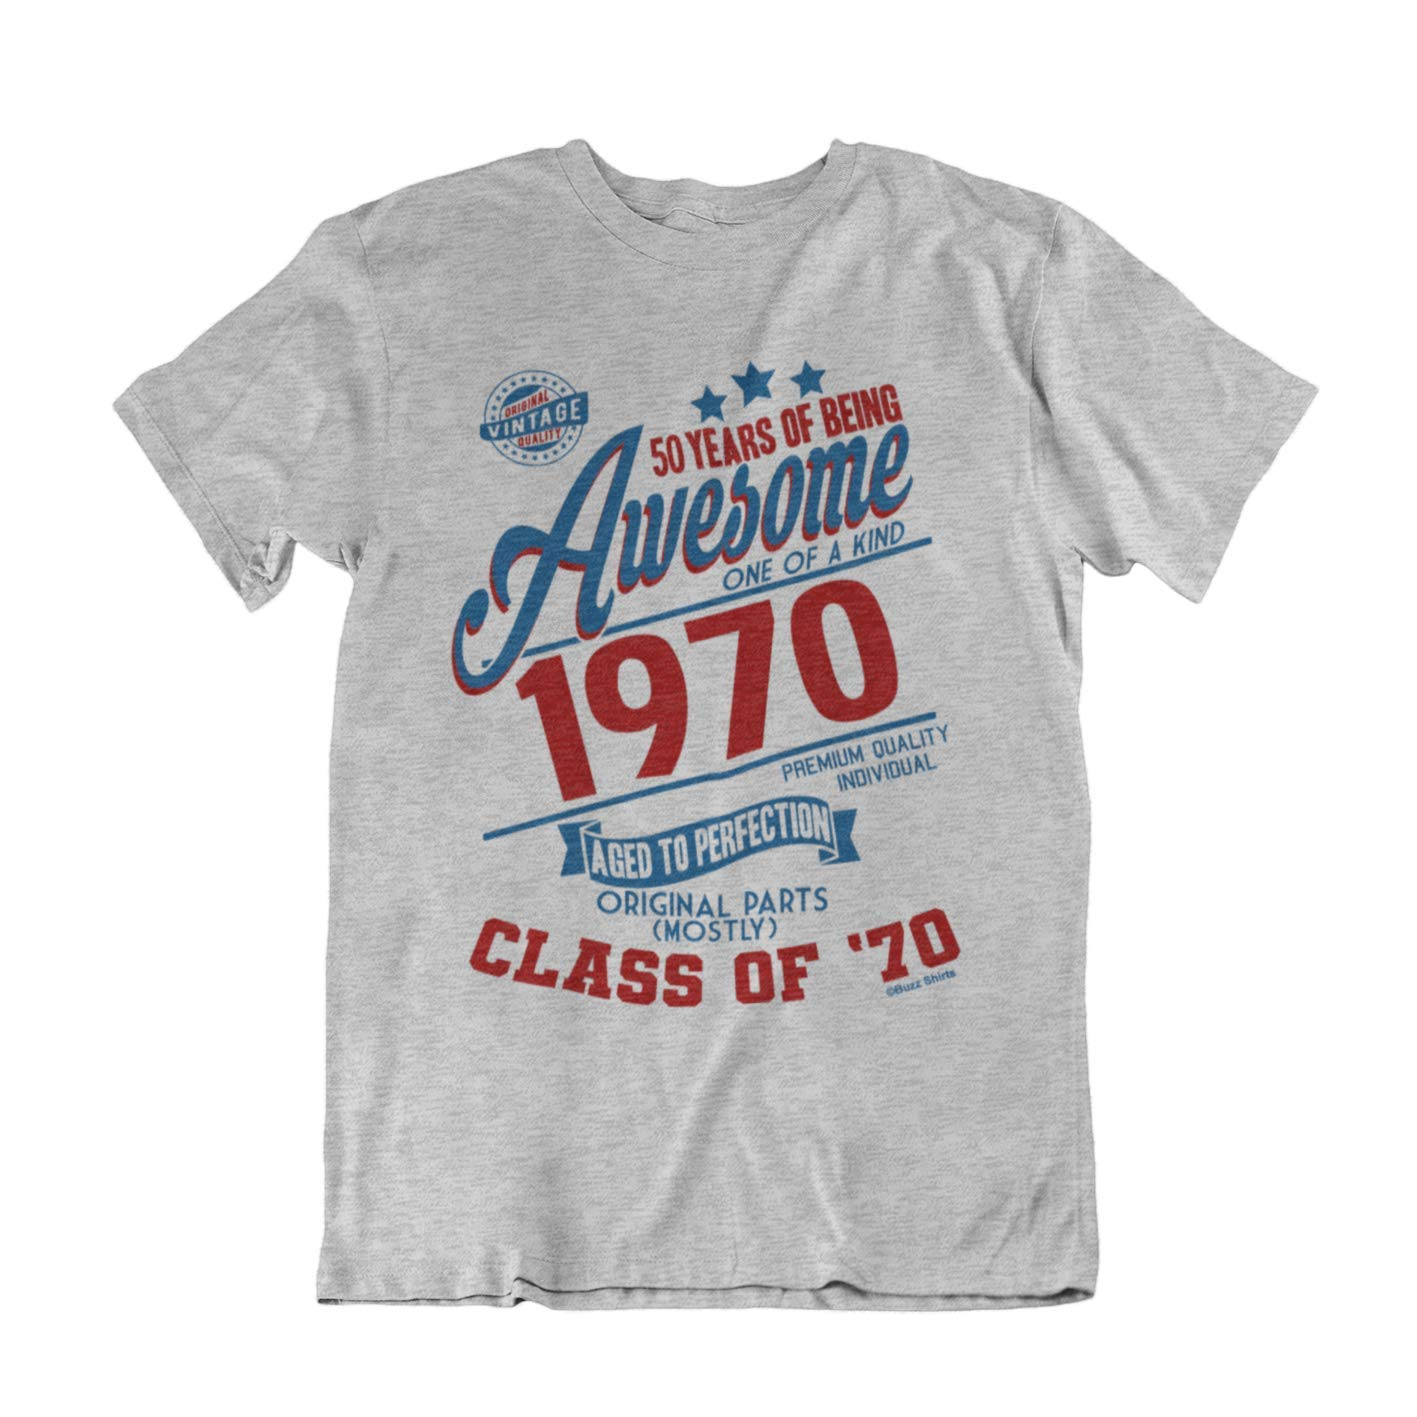 Buzz Camisetas para Hombre de cumpleaños T-Shirt 50 Years of Being Awesome 1969 Aged To Perfection Class of 69